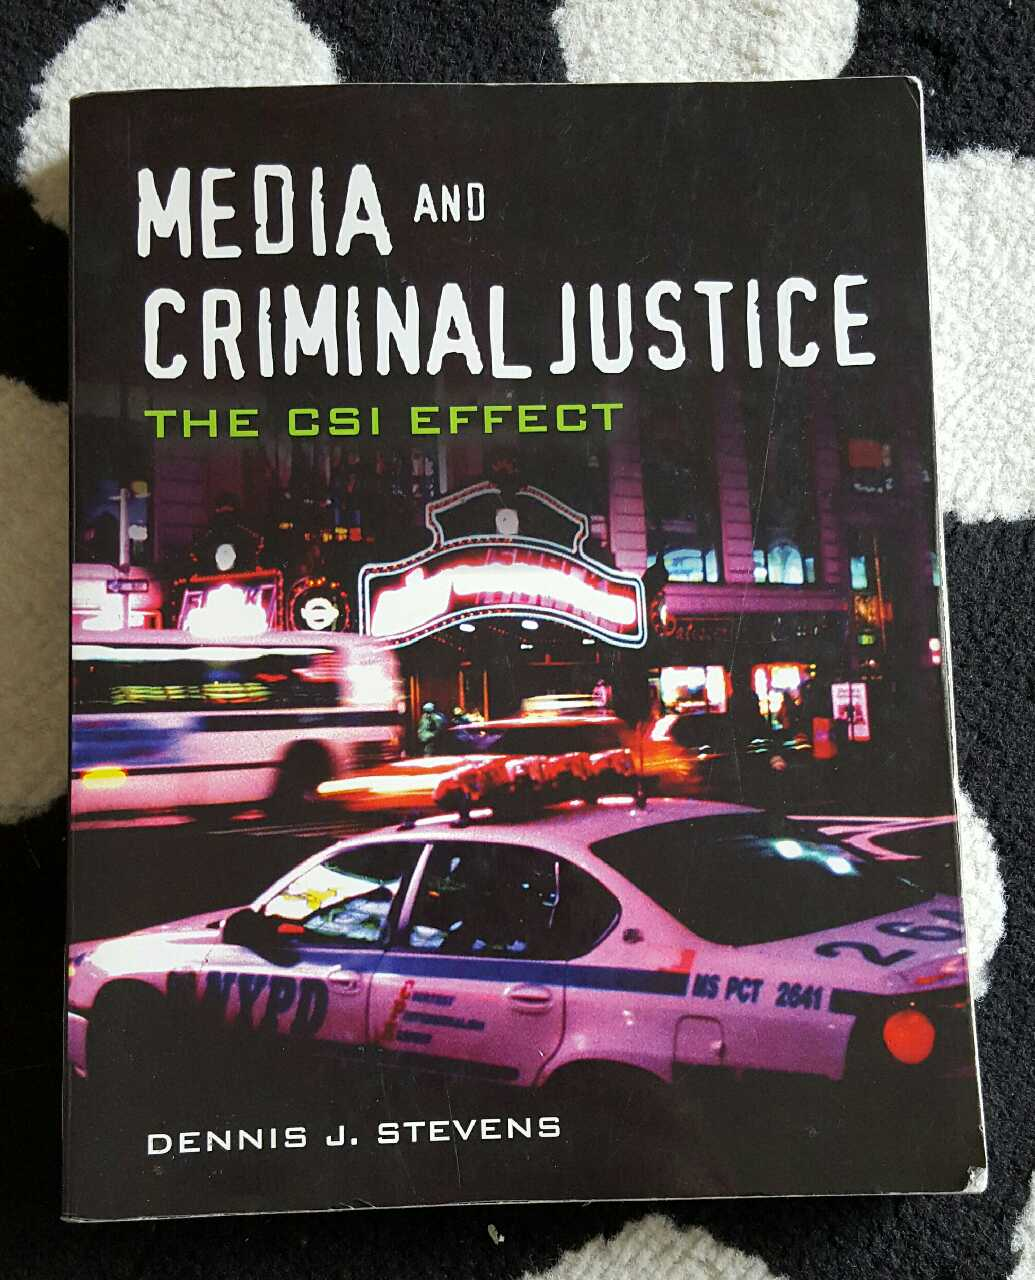 media and its effects on criminal The impact of social media in criminal justice posted by bob brzenchek on friday, march 20, 2015 social media has impacted almost every industry over the past decade and the criminal justice field is no exception.